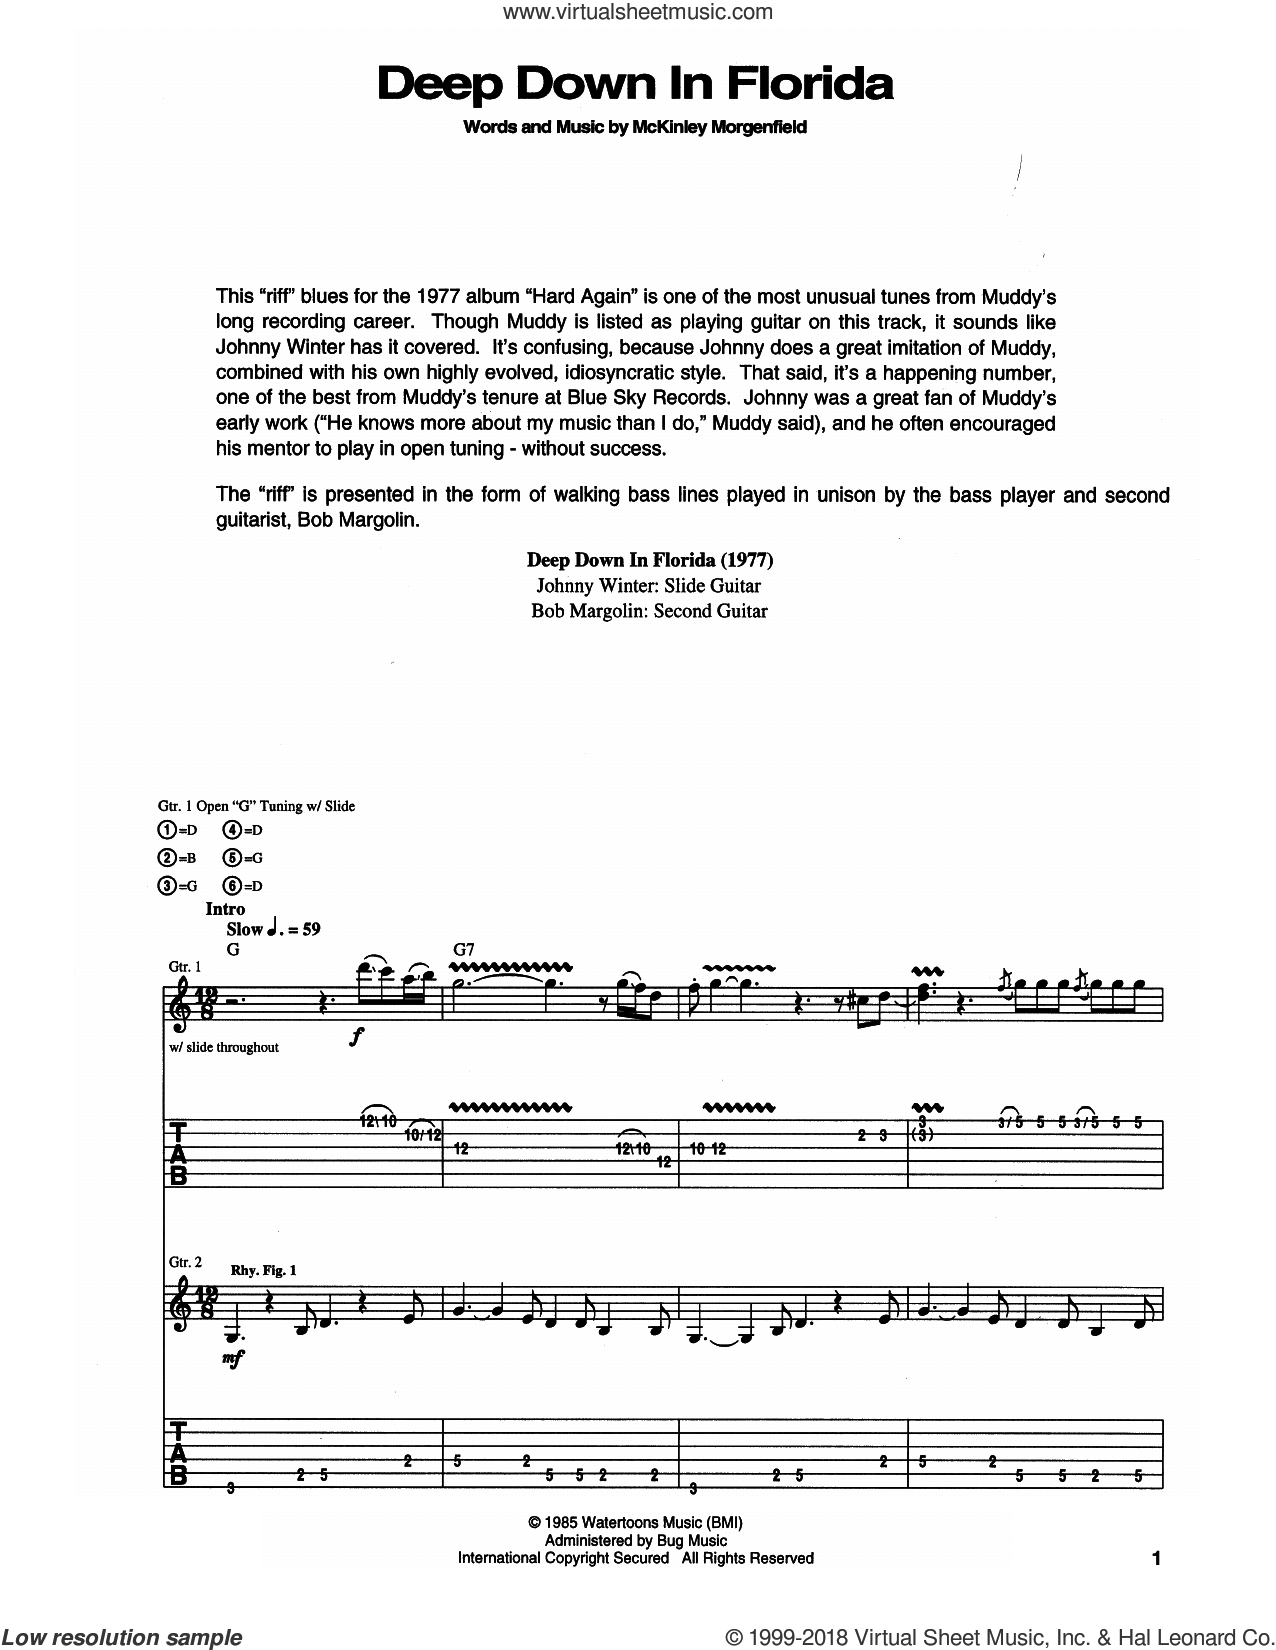 Deep Down In Florida sheet music for guitar (tablature) by Muddy Waters and McKinley Morganfield. Score Image Preview.